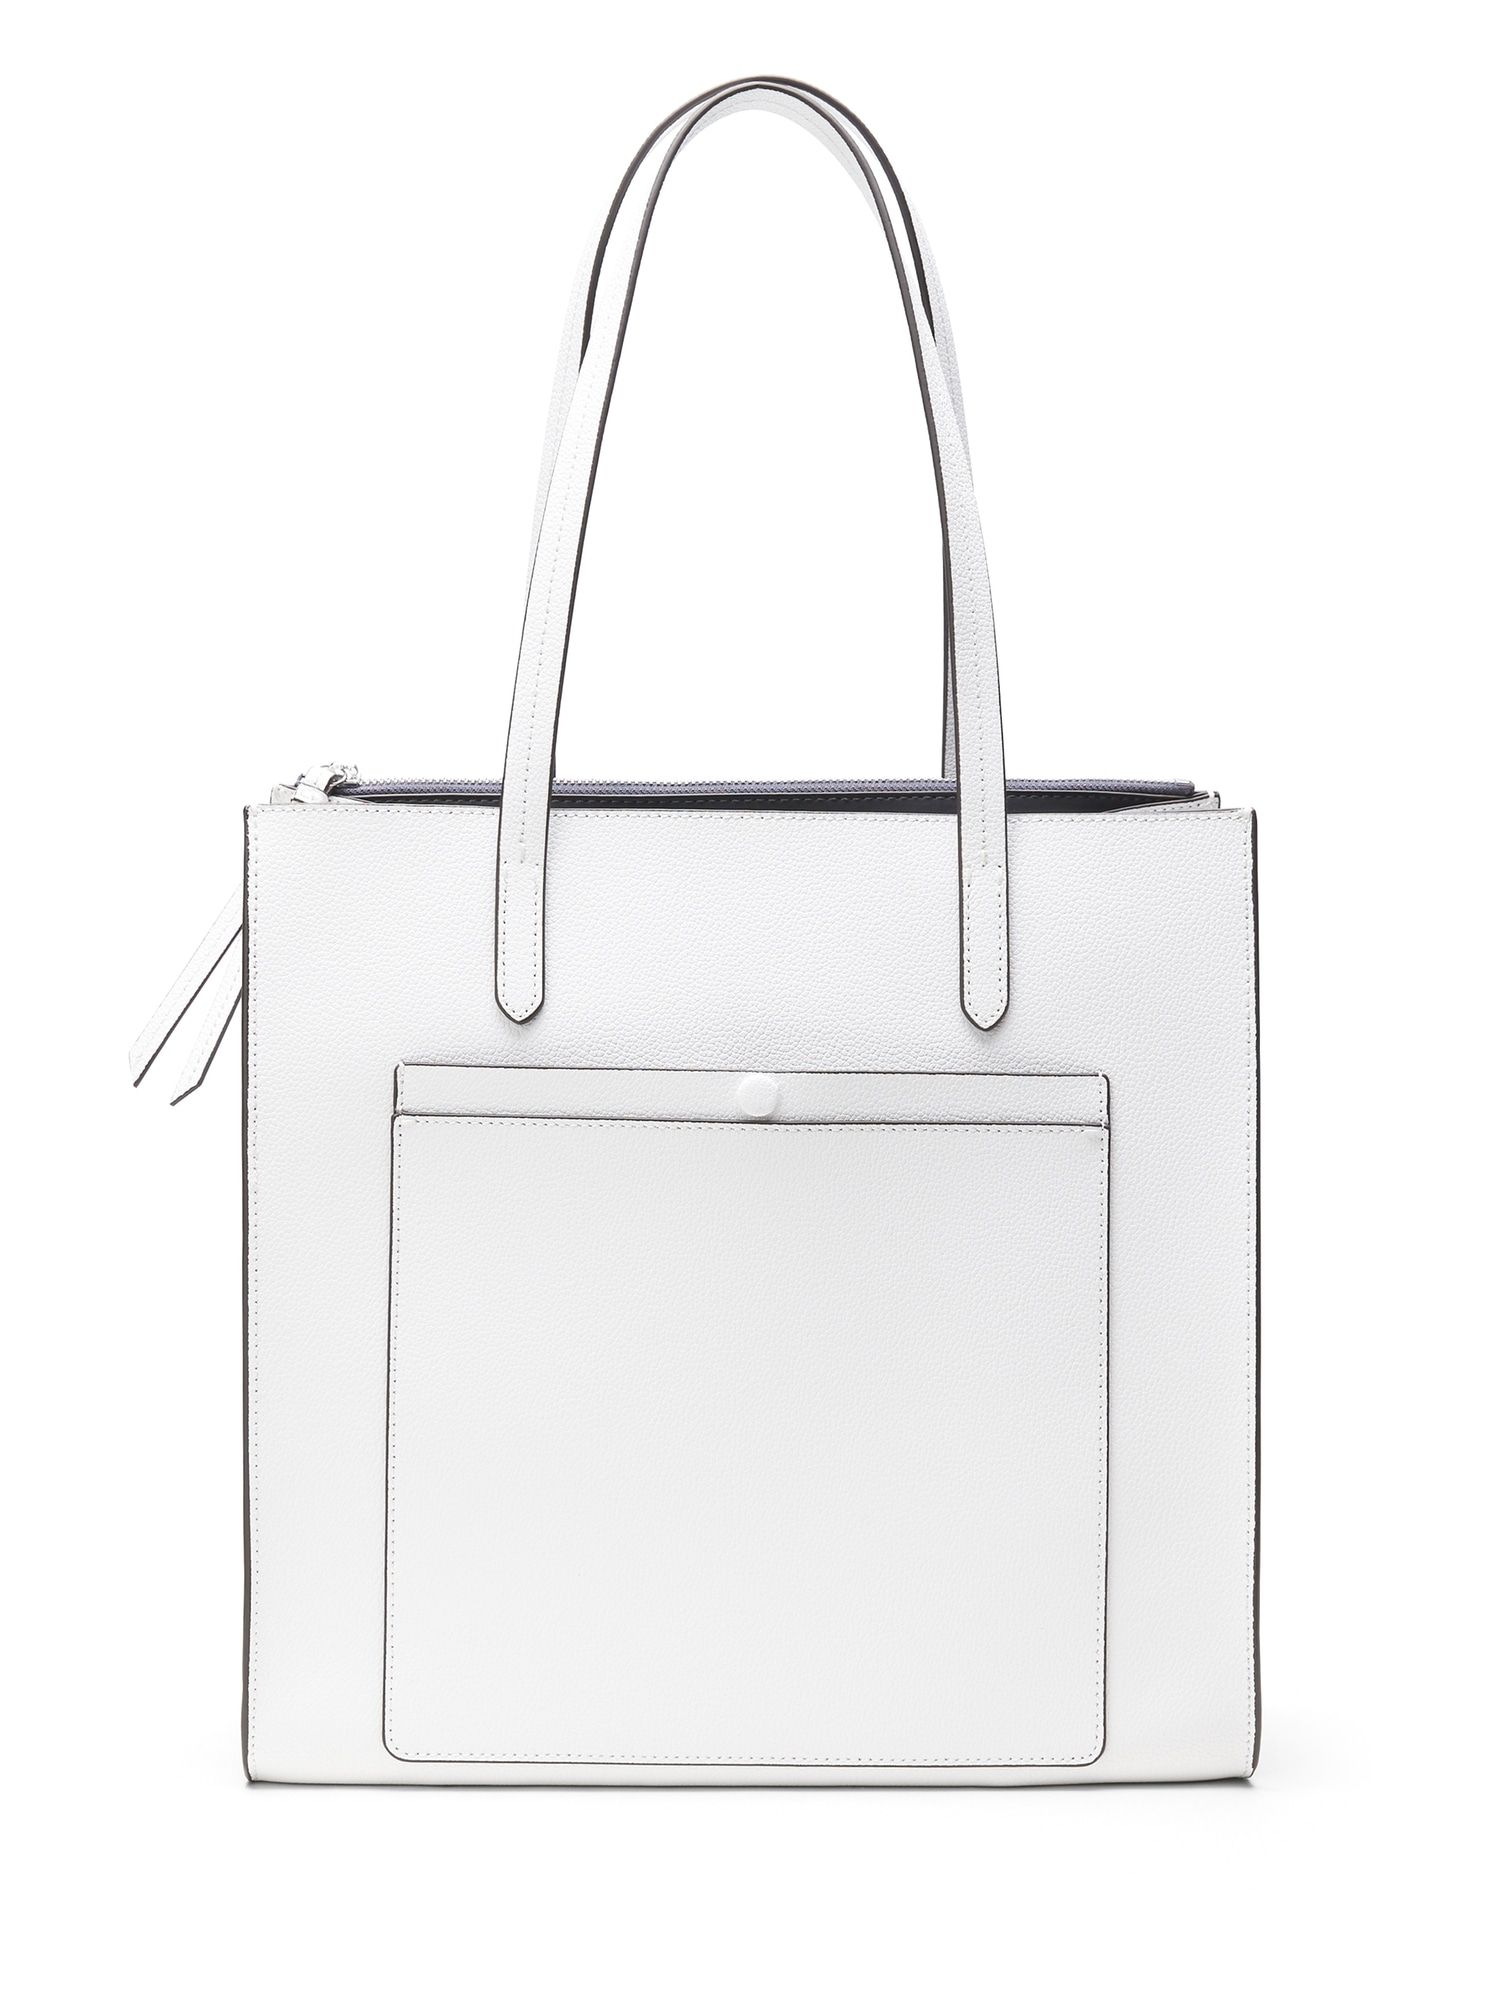 12Hour Leather Large Tote Banana Republic in 2020